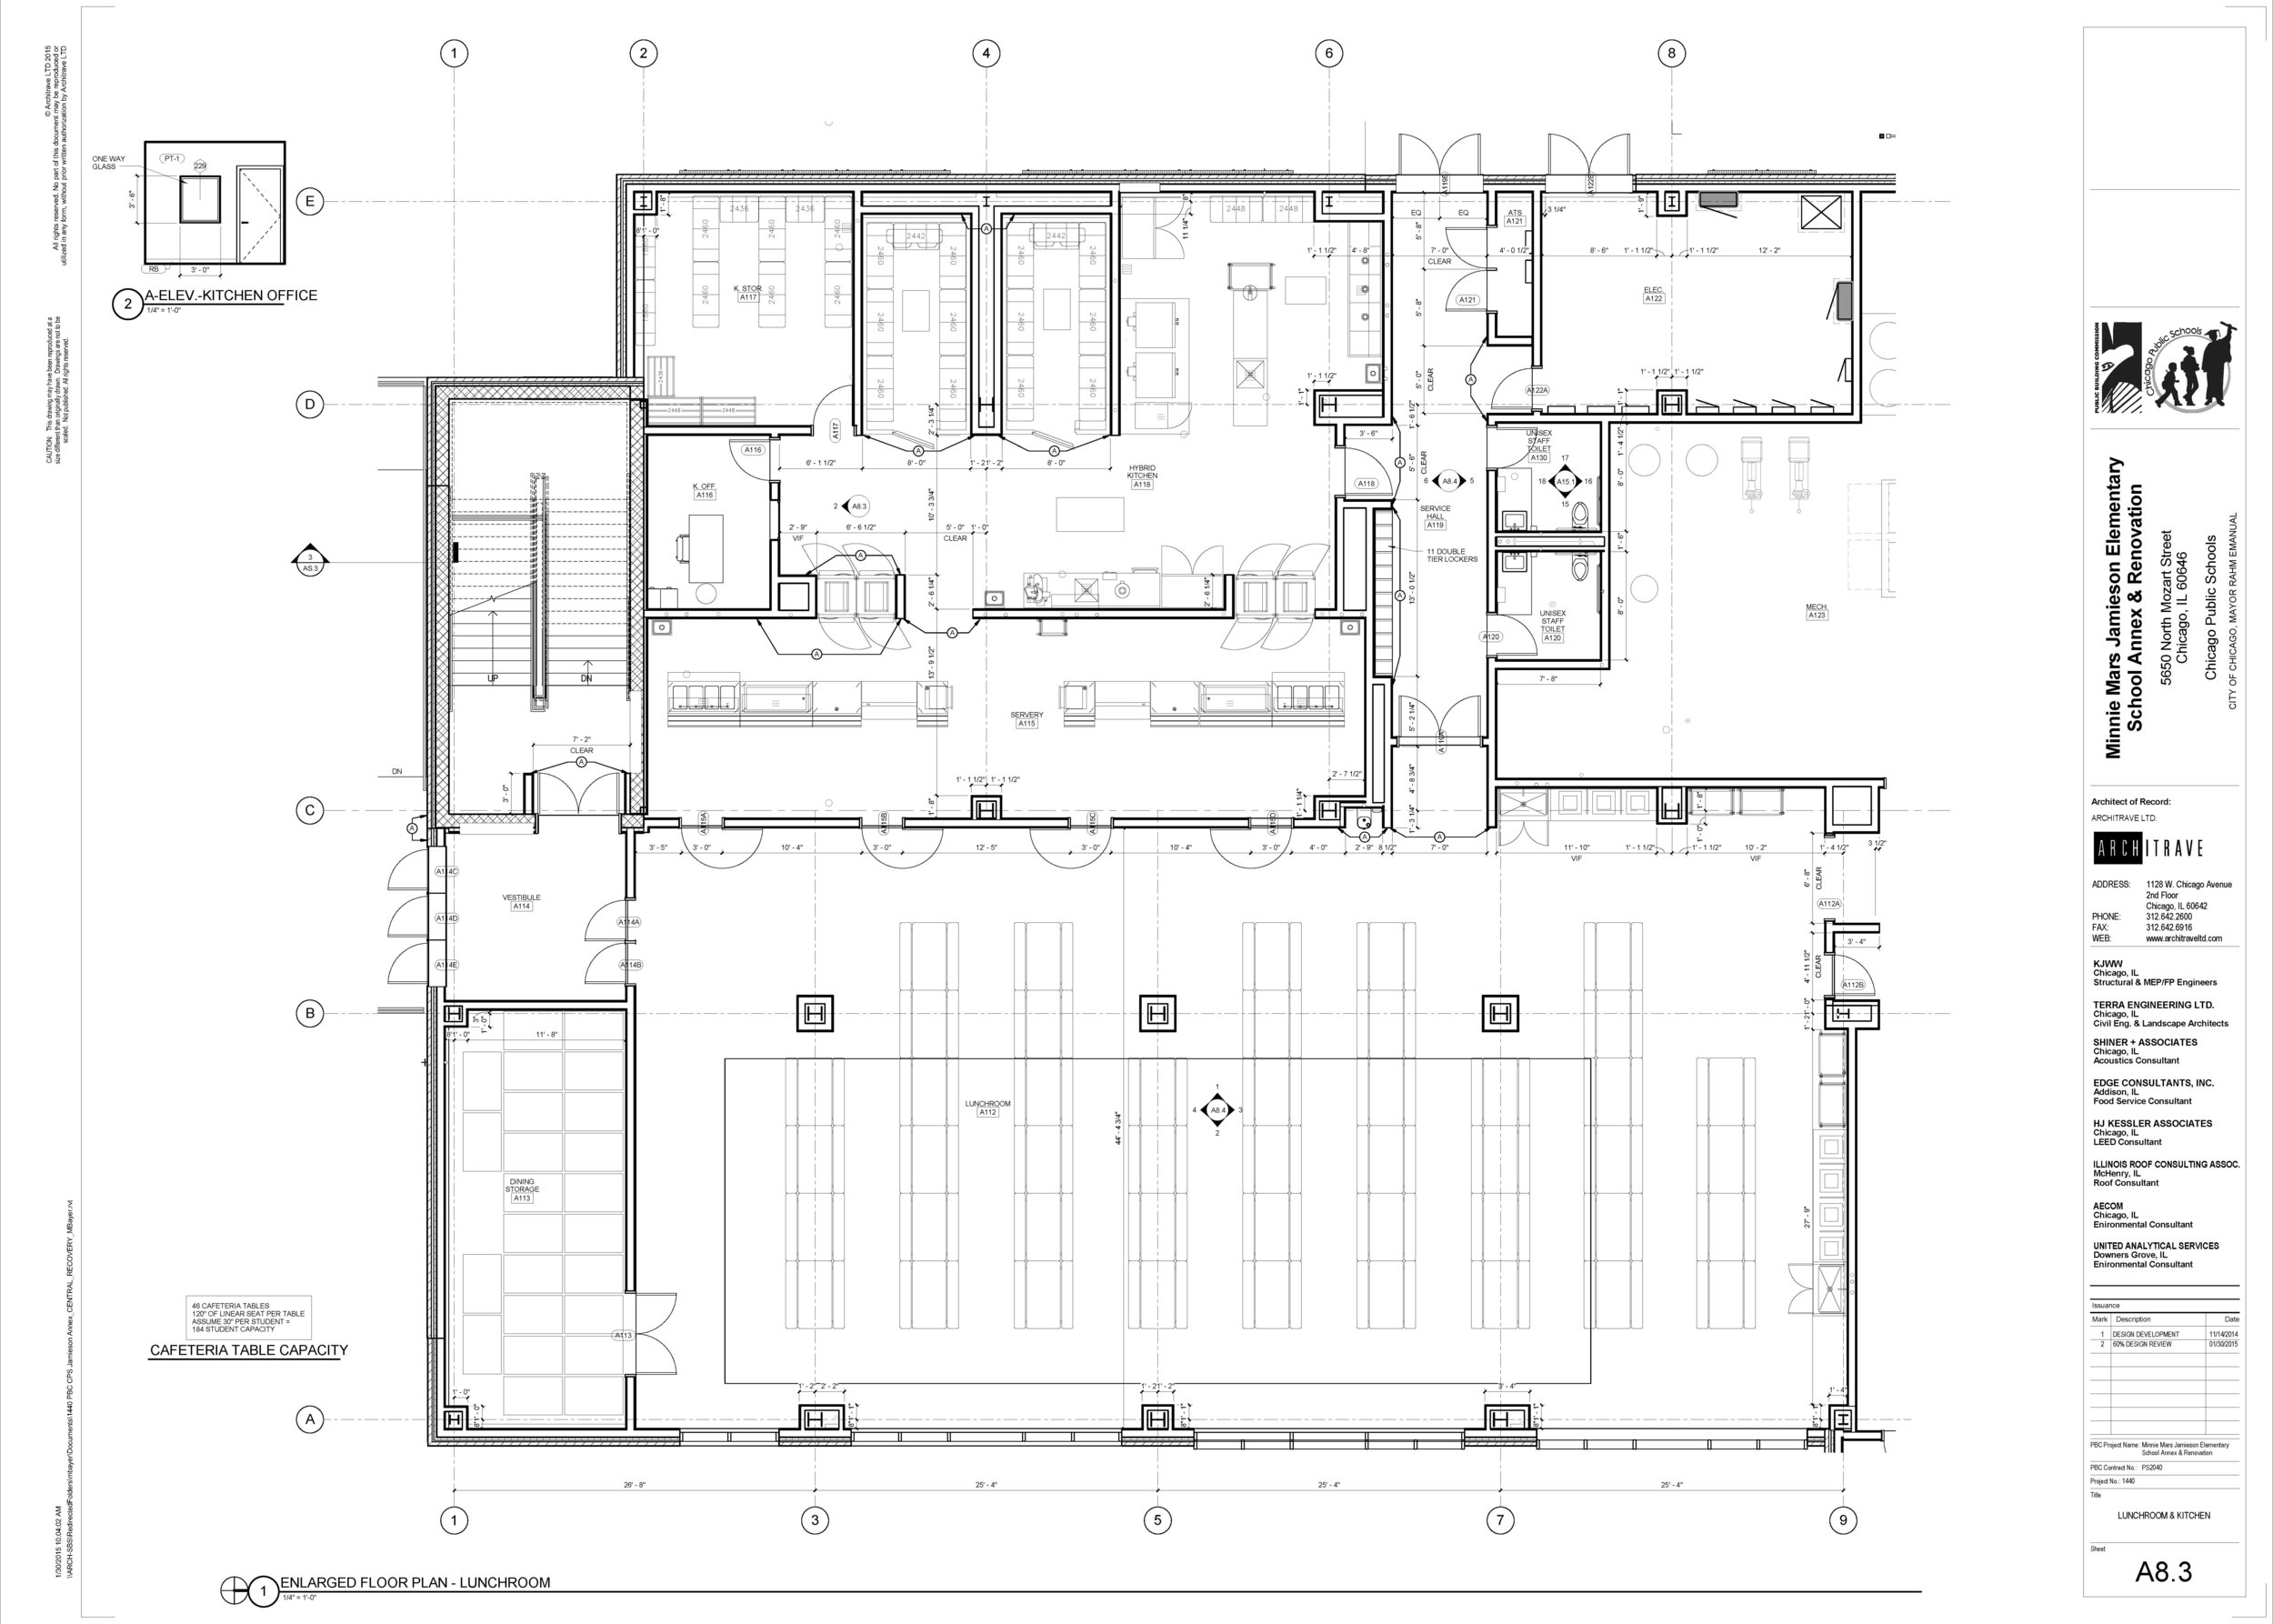 Kitchen Plan.jpg